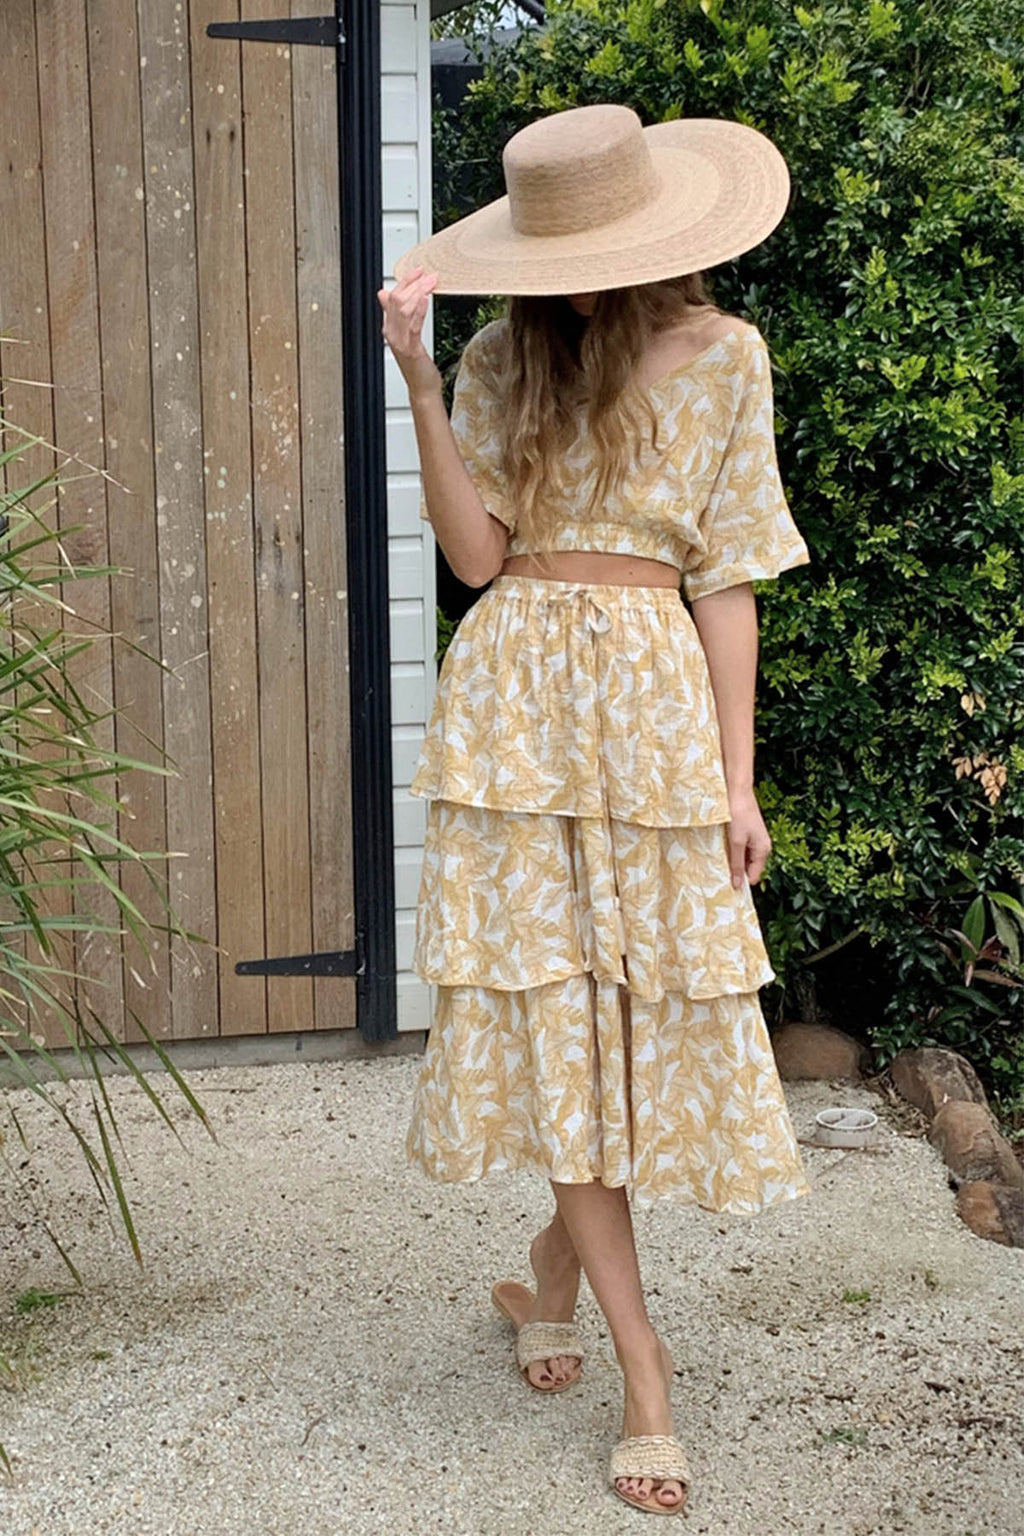 Wandering Layered Skirt - Beige Leaf - The Bohemian Corner